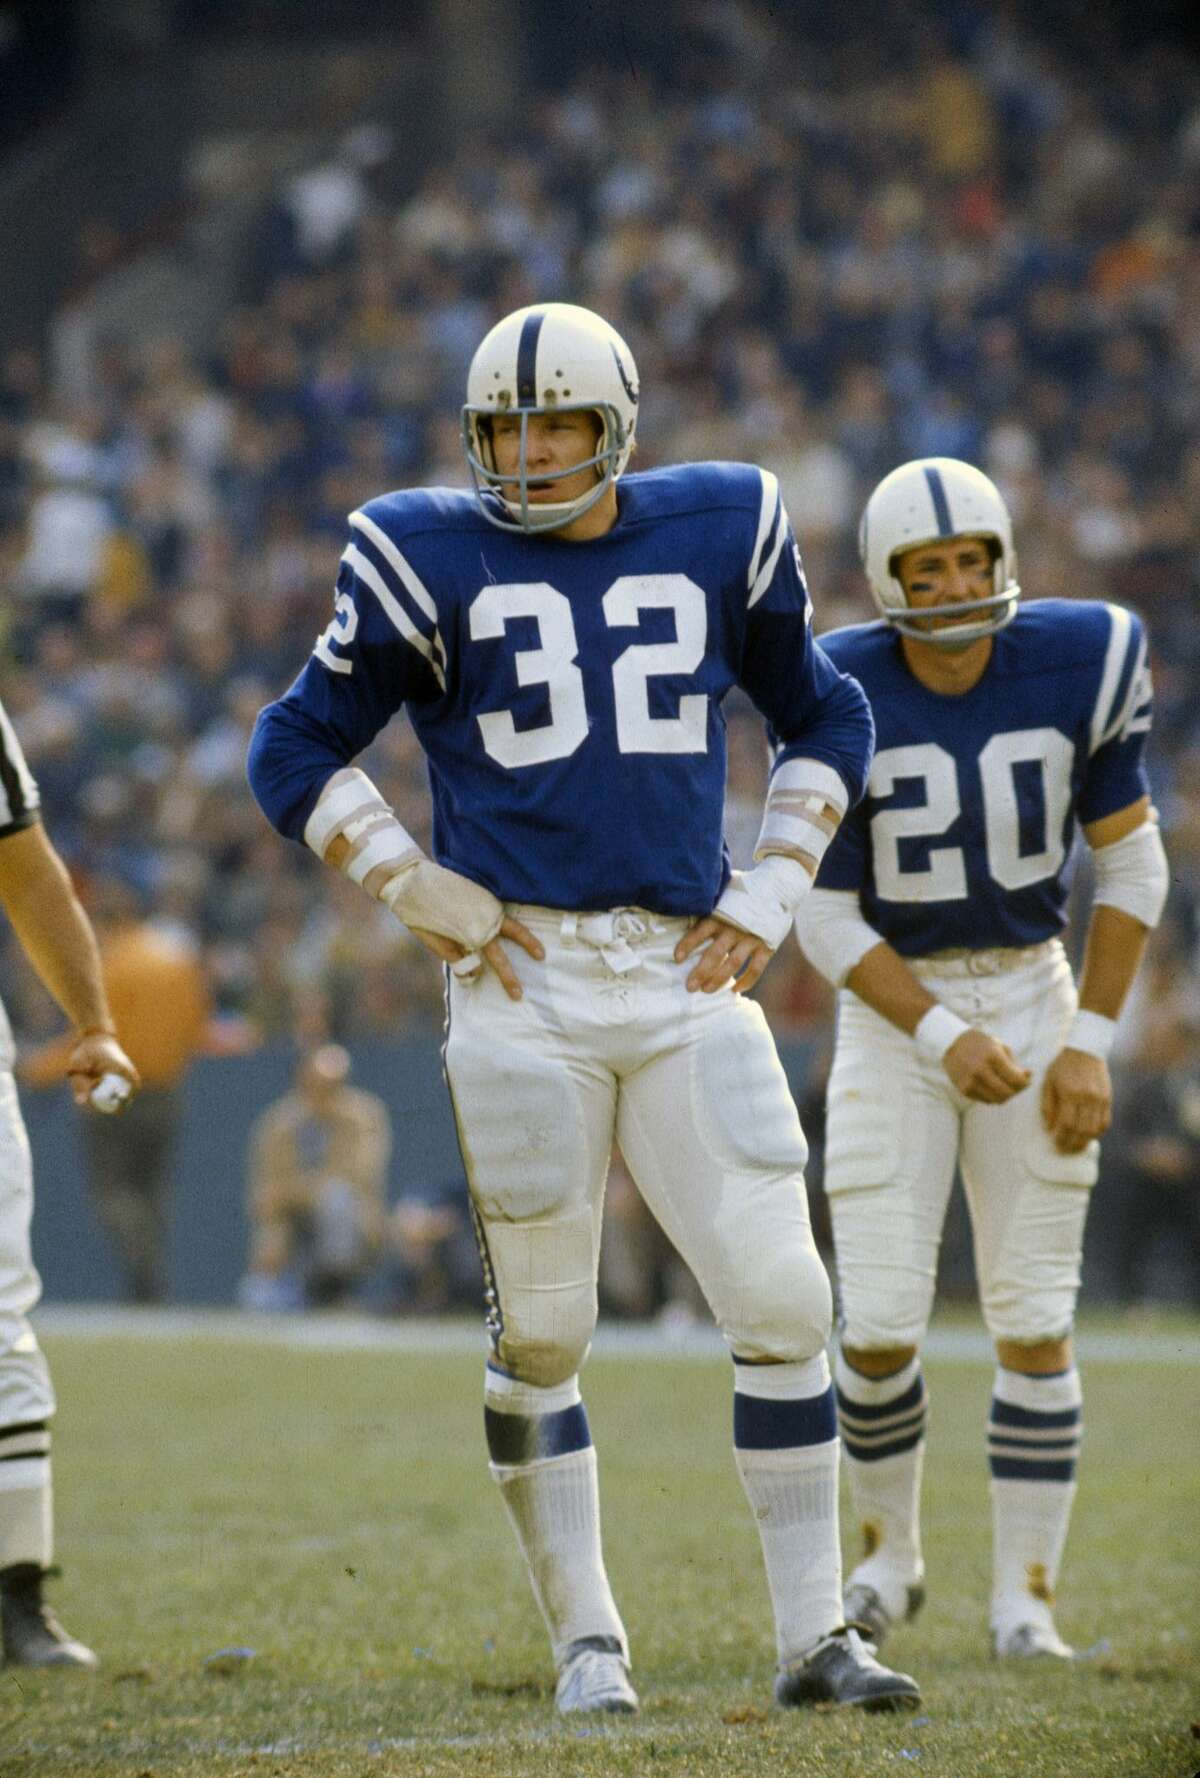 Curtis, who played 14 seasons in the NFL in the 1960's and 70's, was one of the hardest-hitting linebackers of his era.